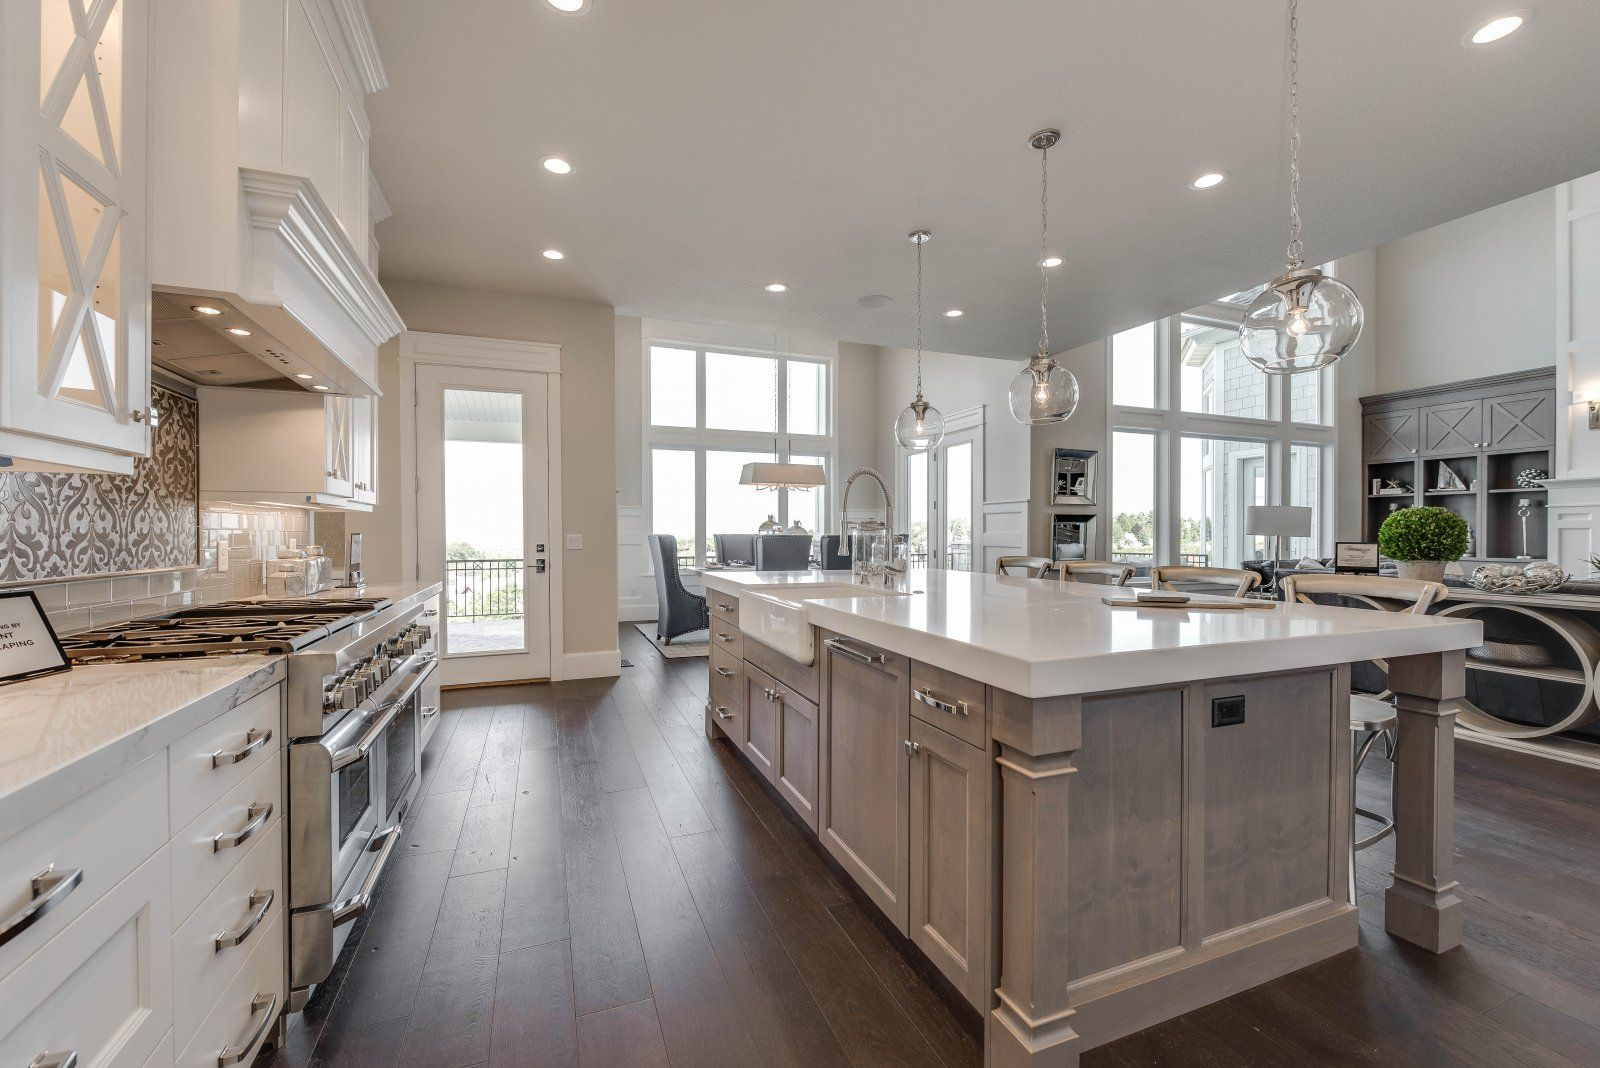 the living room cabinet shelves match the island the back counter and cabinets are different on kitchen island ideas kids id=67307